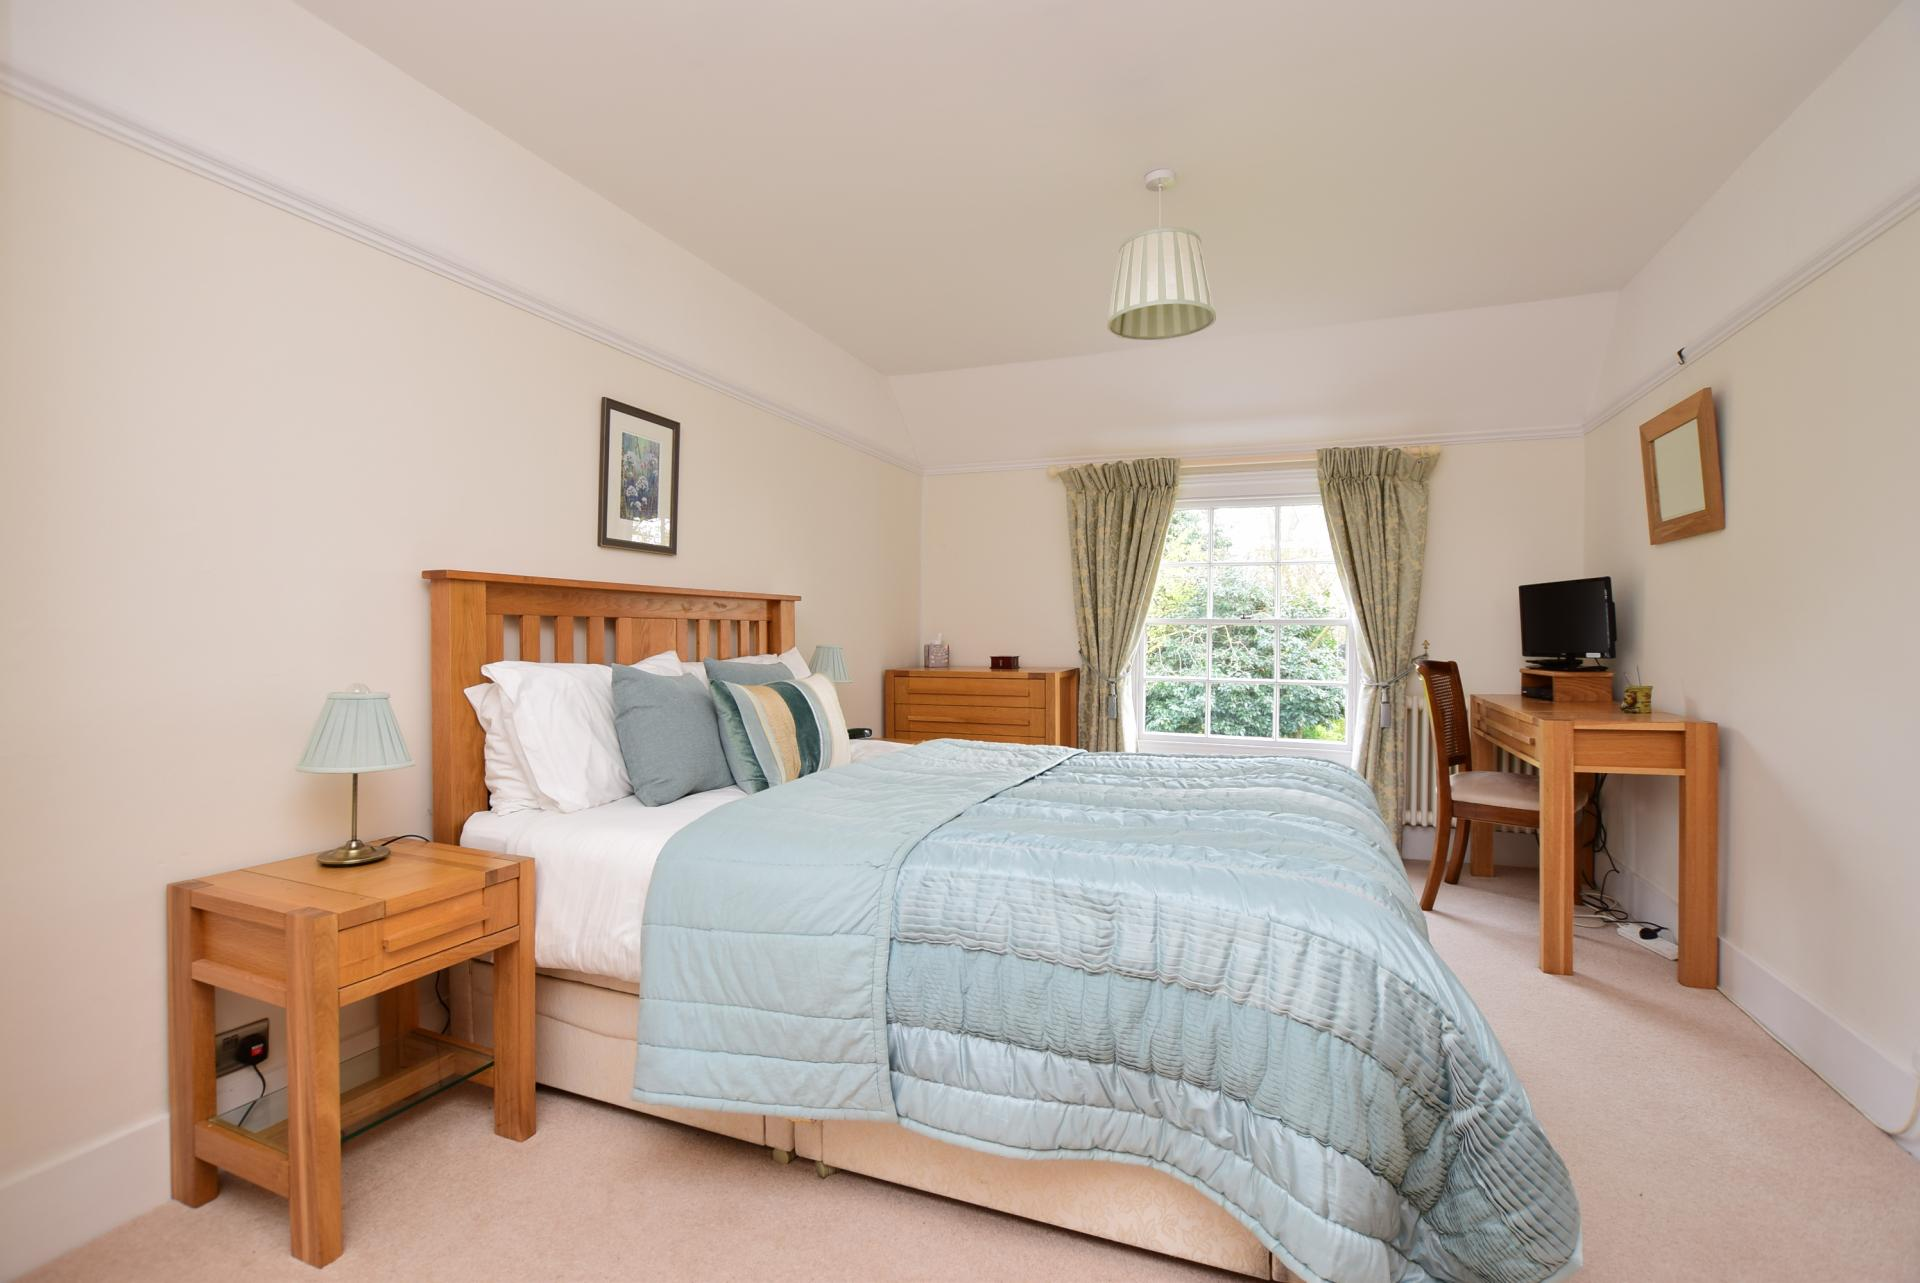 Orchard House Bed And Breakfast For Sale